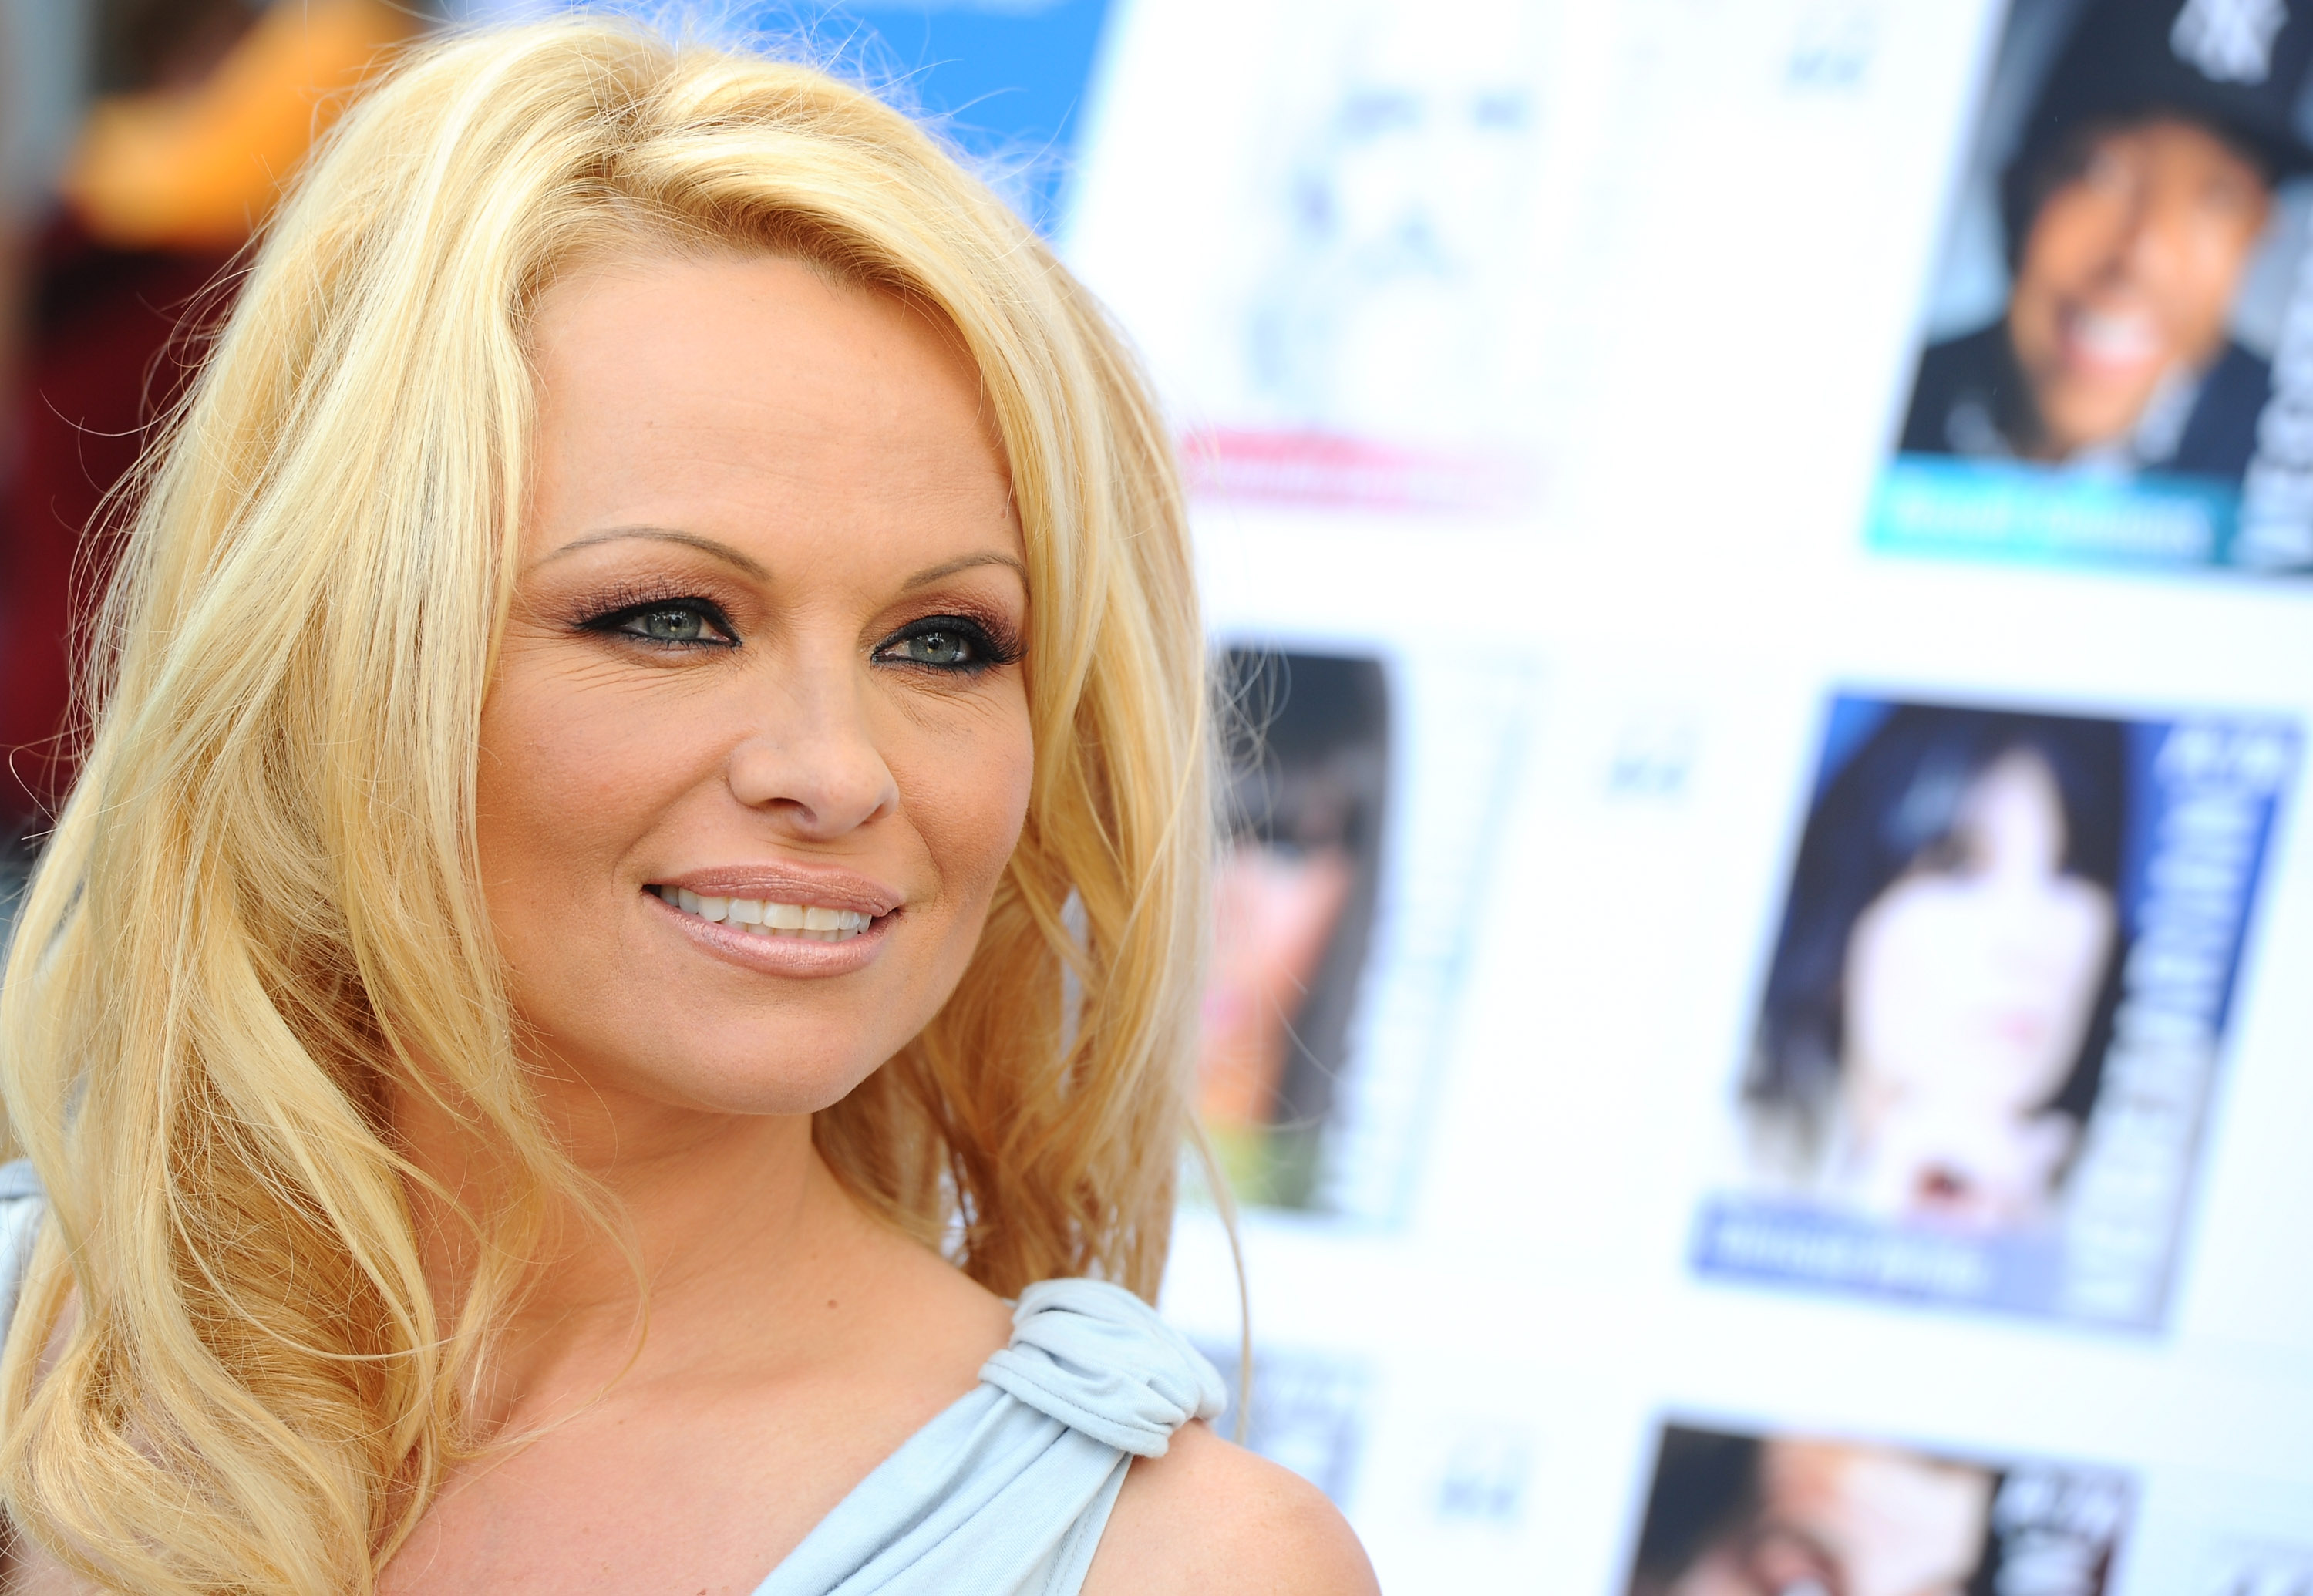 Pamela Anderson is cured of hepatitis C, thanks to a new